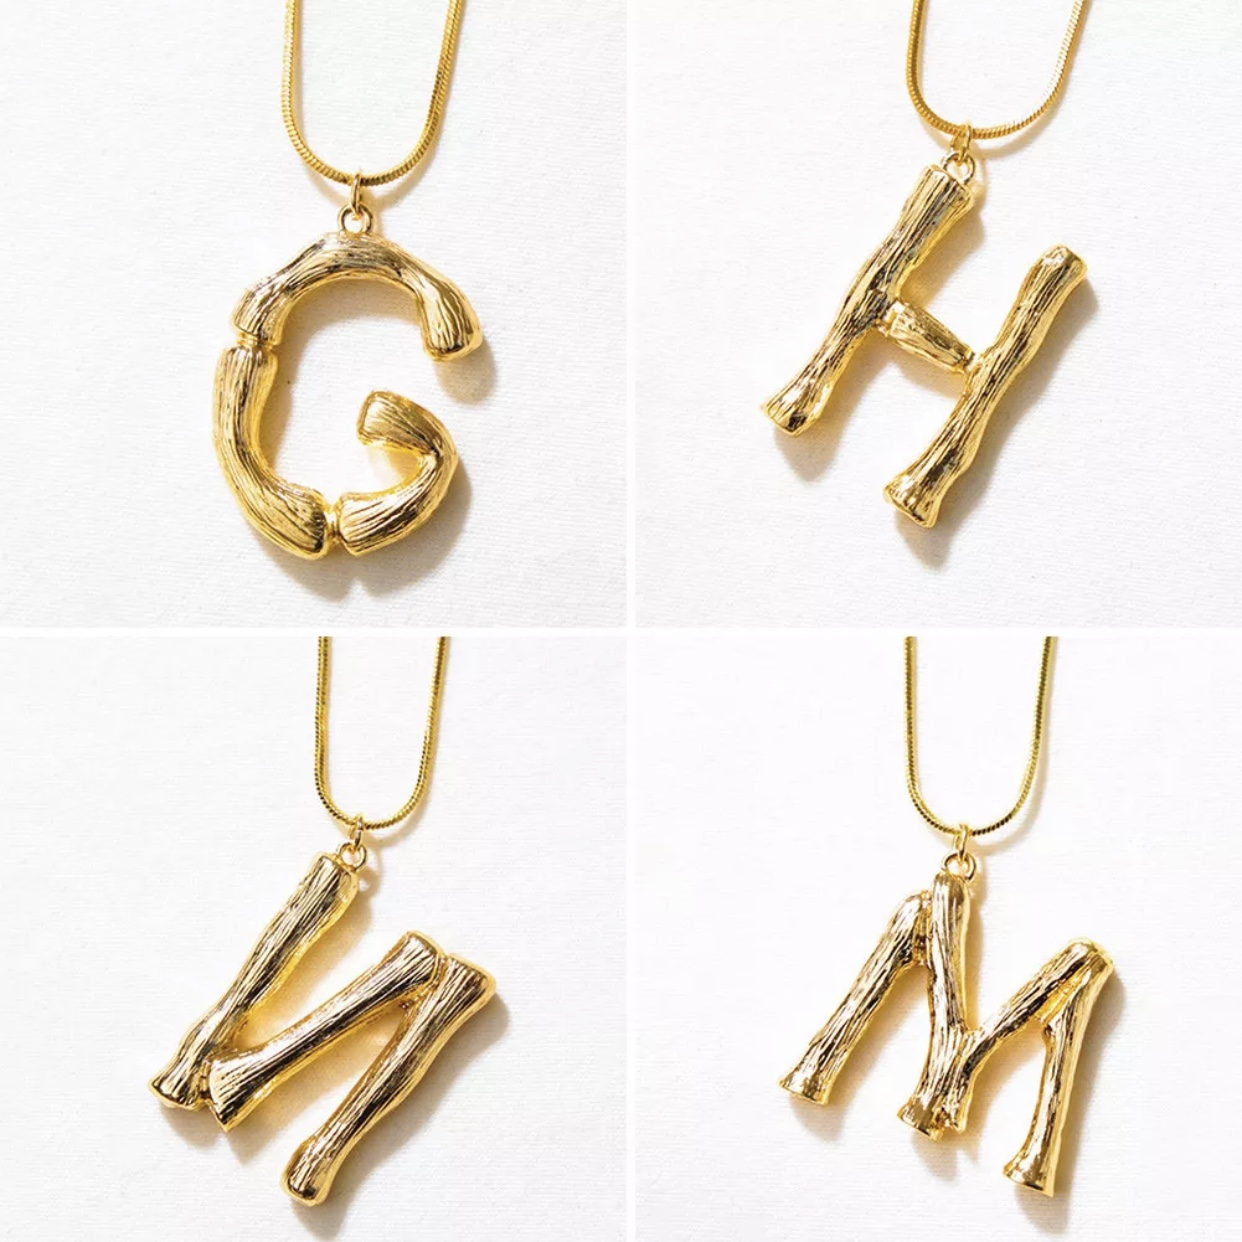 2b2d85641b5d8 Celine style gold bamboo initial necklace. Very... - Depop